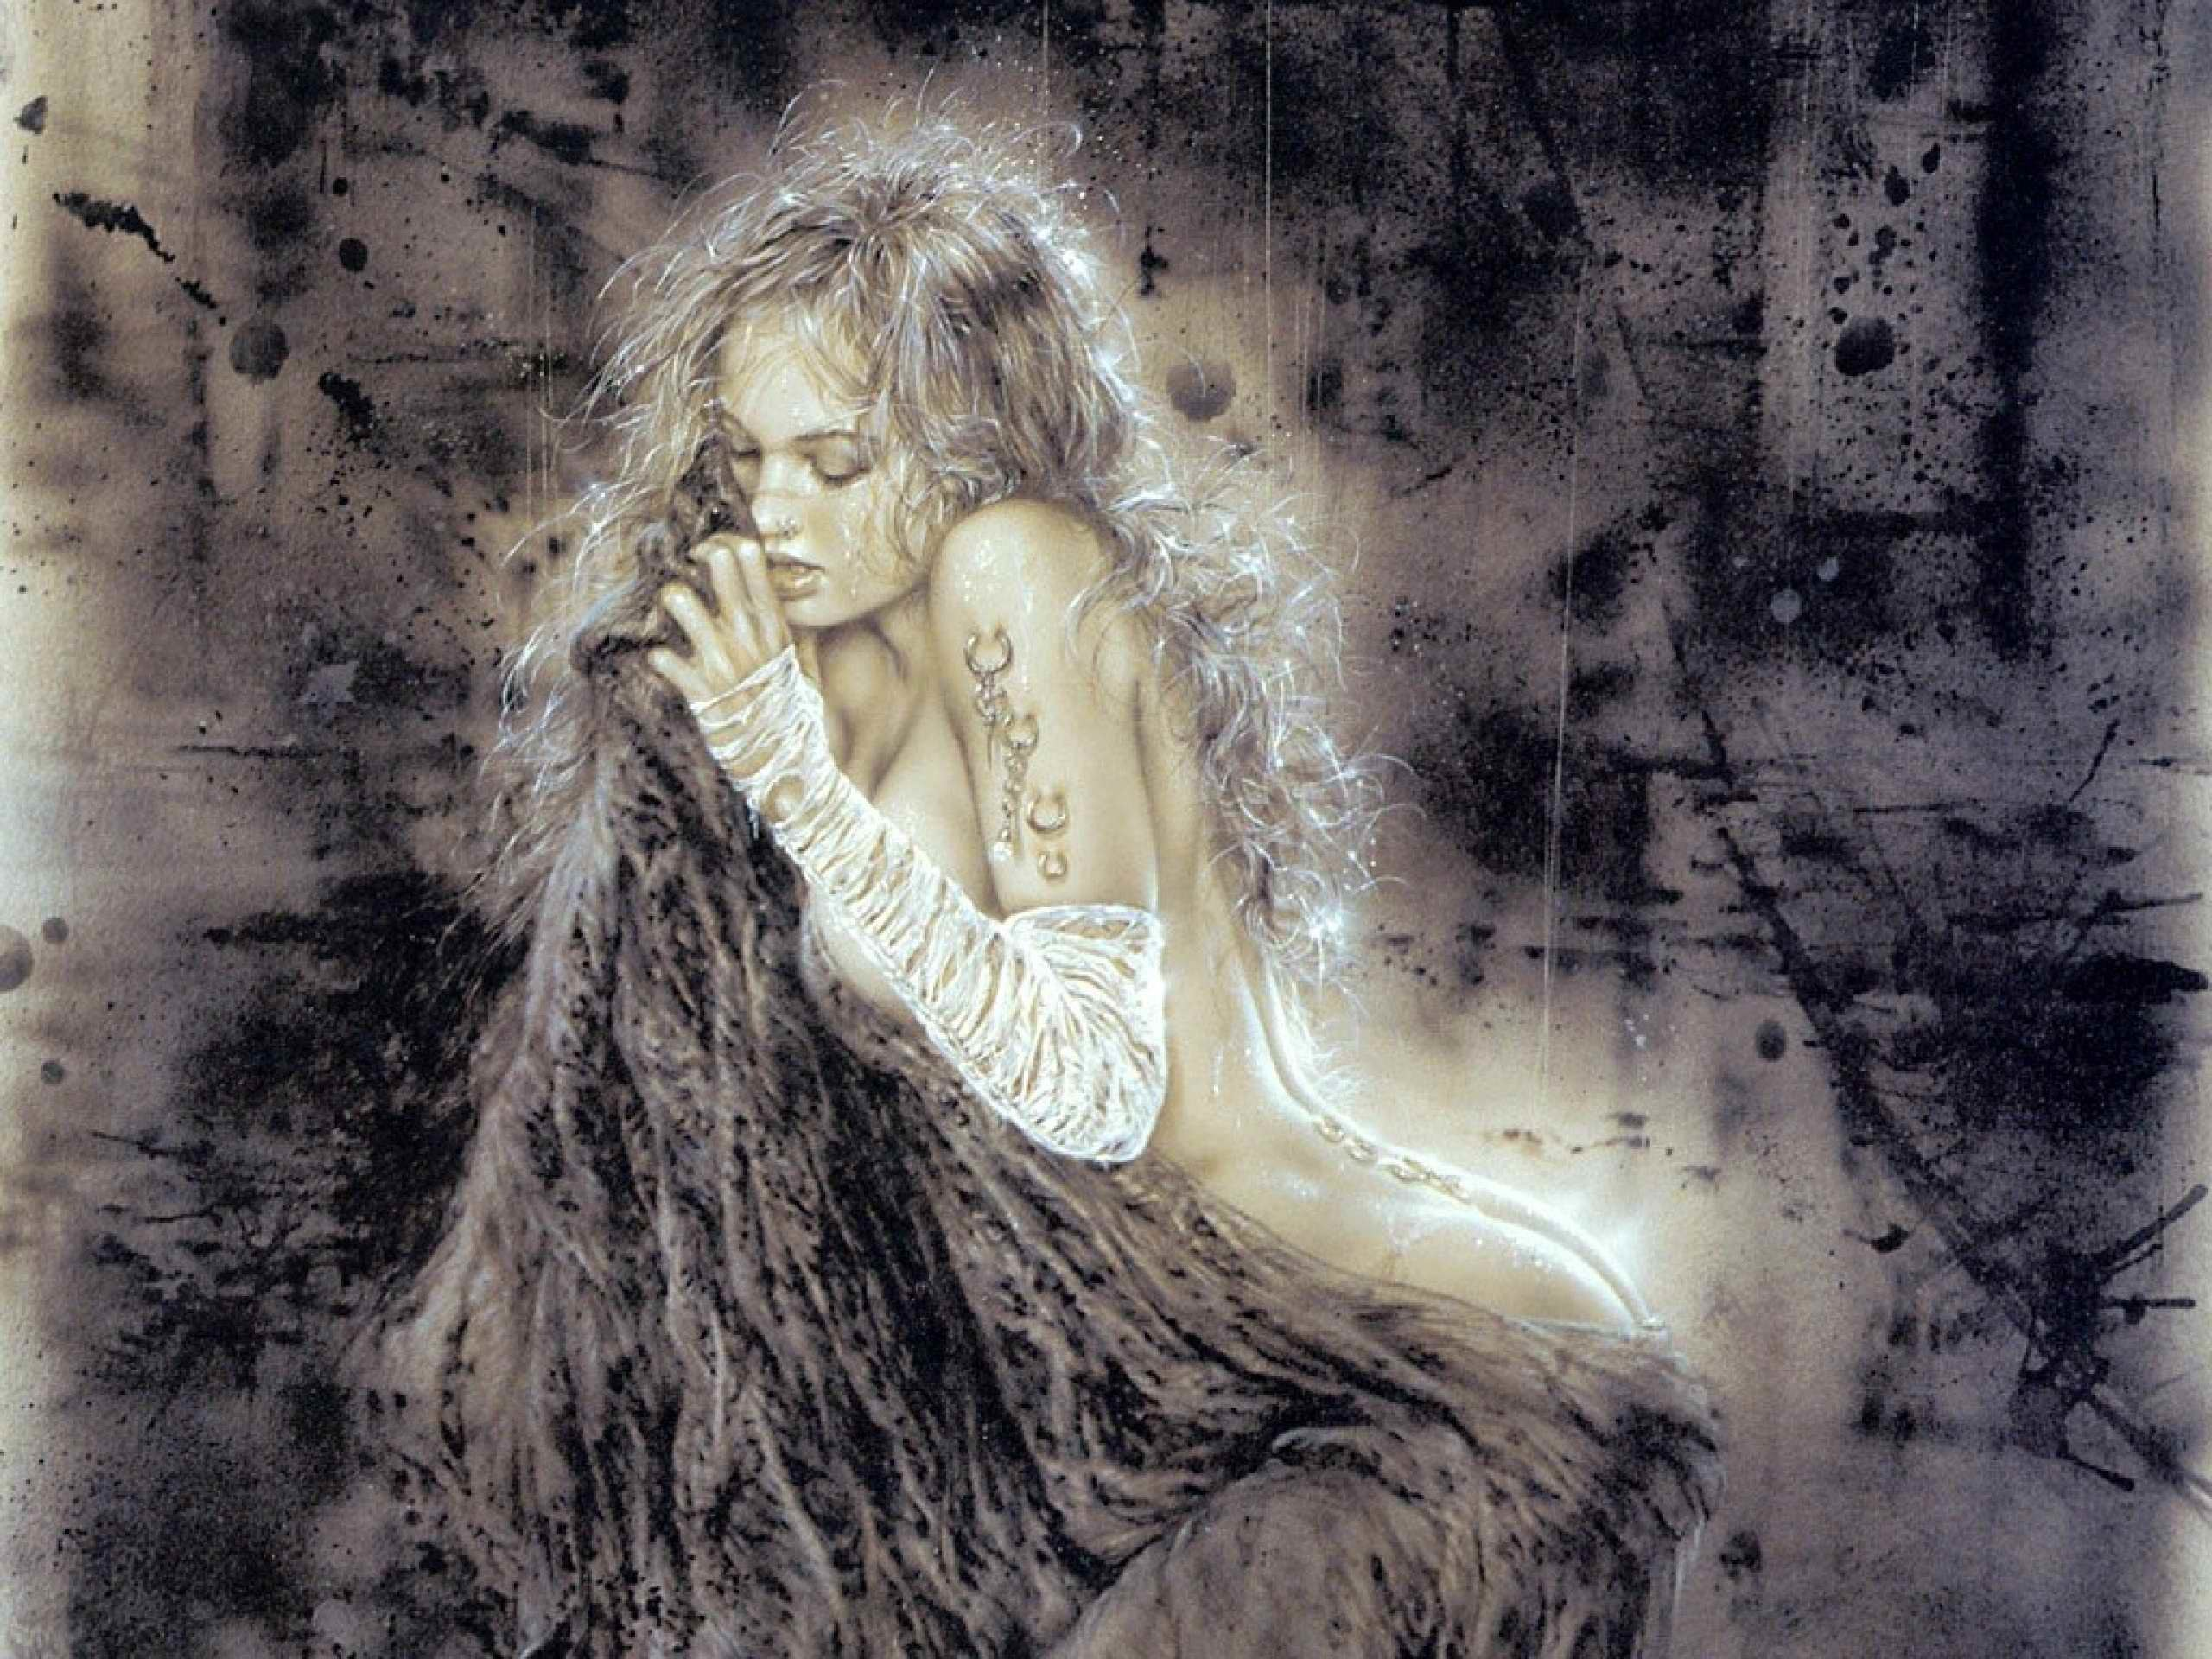 2560x1920 Luis Royo images Fantasy Woman HD wallpaper and background photos